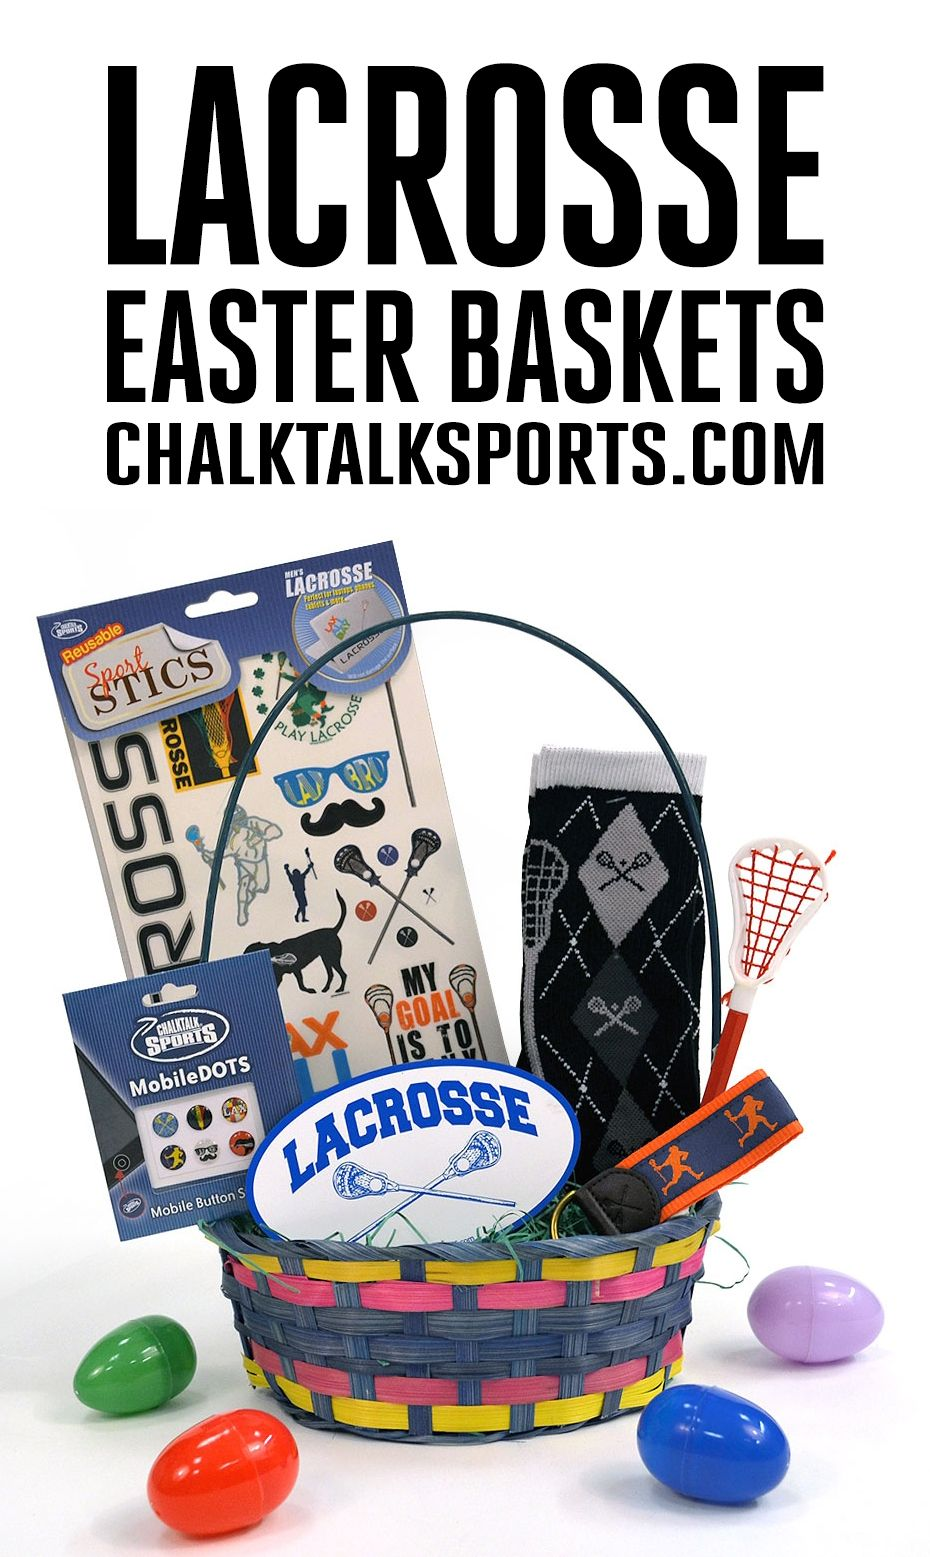 Easter is less than two weeks away! Surprise your favorite lacrosse player with an Easter basket filled with hand-picked lacrosse goodies from ChalkTalkSPORTS.com! Your athlete will love this basket that includes comfy lax apparel, our MobileDOTs for your iPhone or iPad, decor, and more!